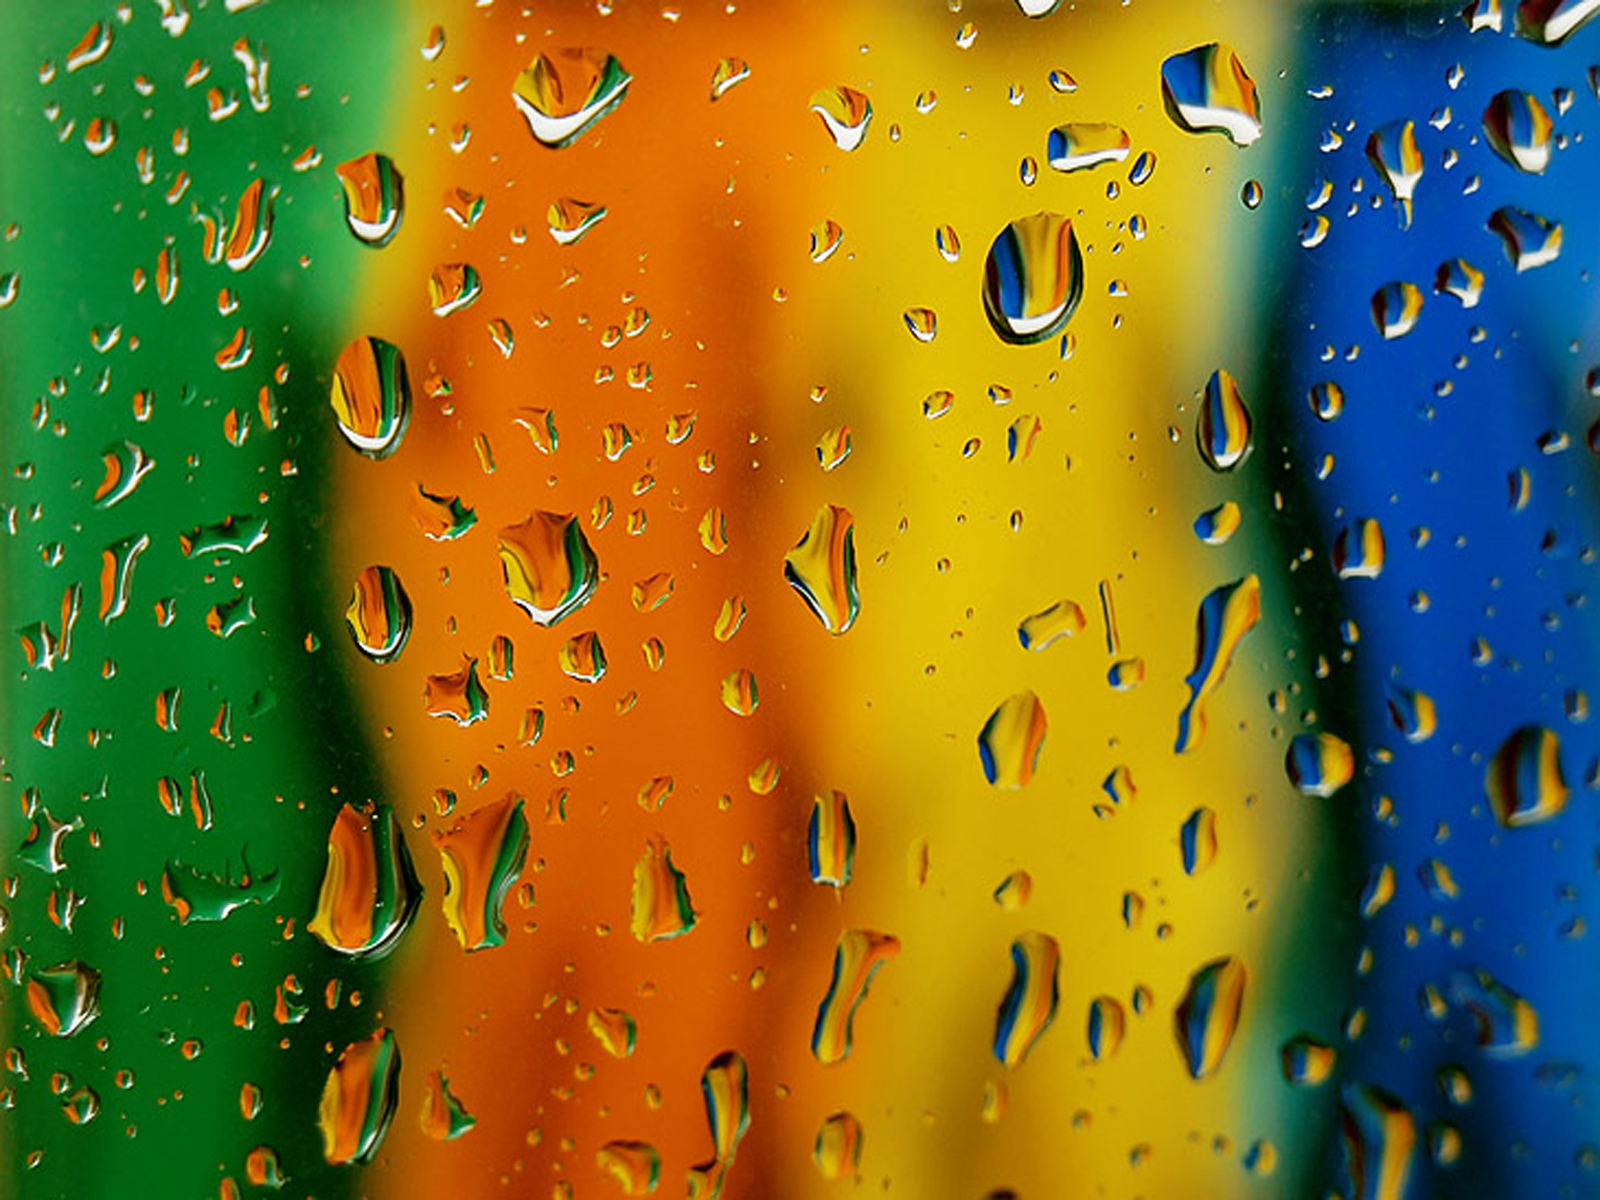 Hd wallpaper colorful - Colorful Drops Wallpapers And Stock Photos